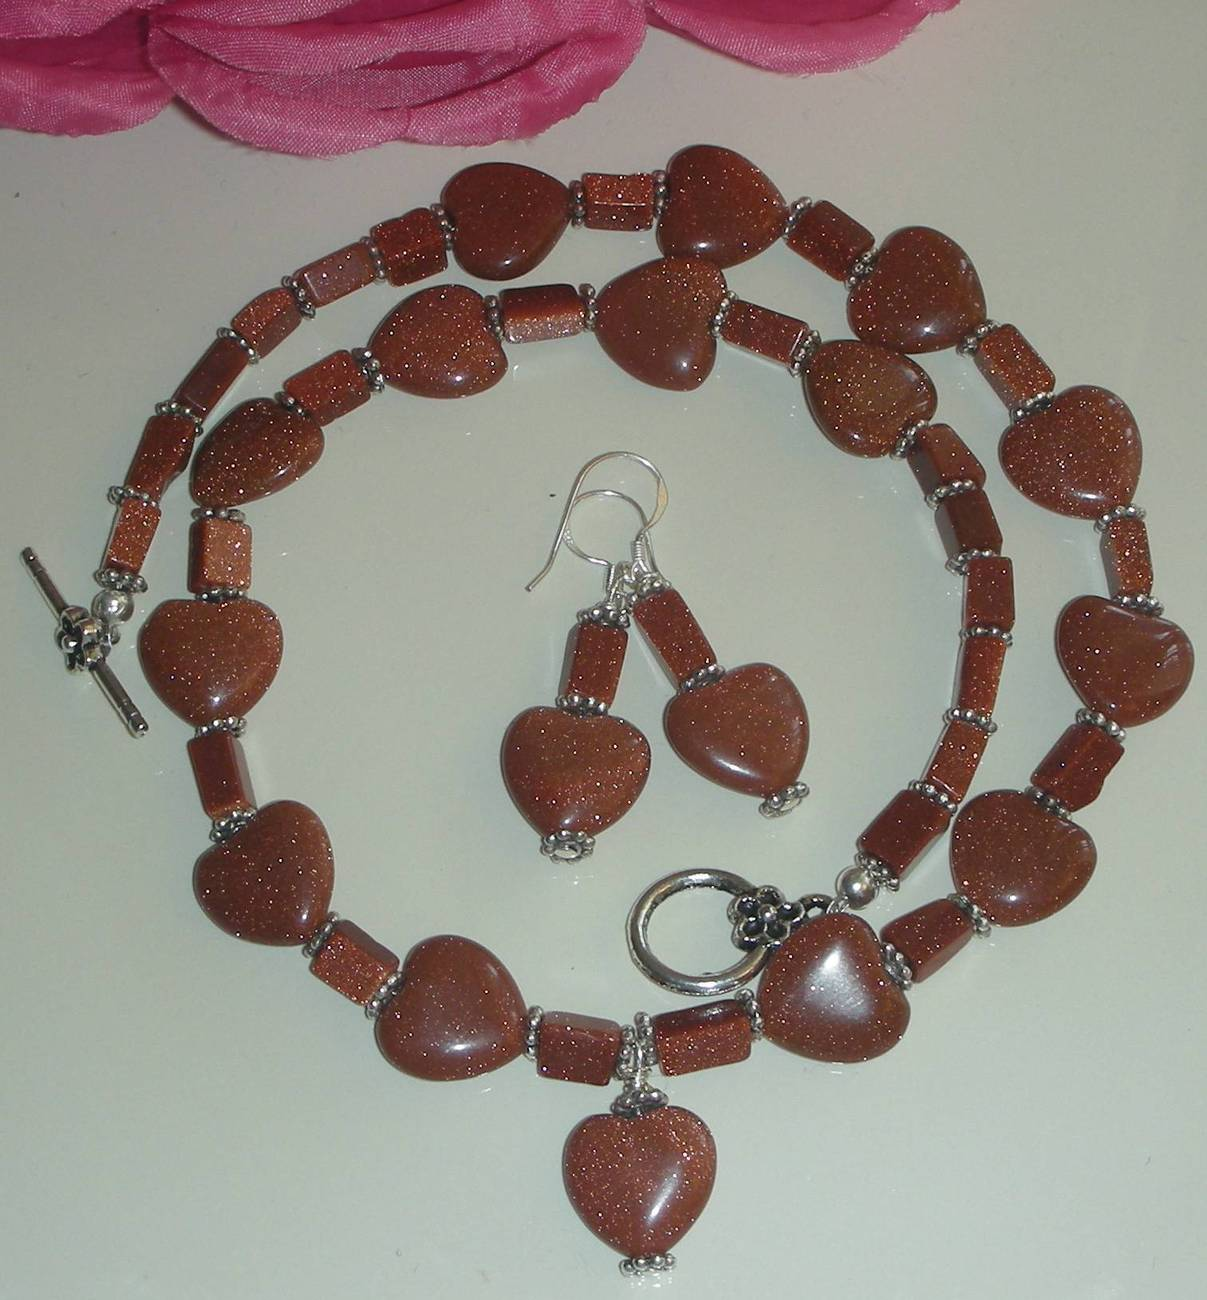 BE STILL MY HEART SUNSITARA GOLDSTONE HEARTS NECKLACE